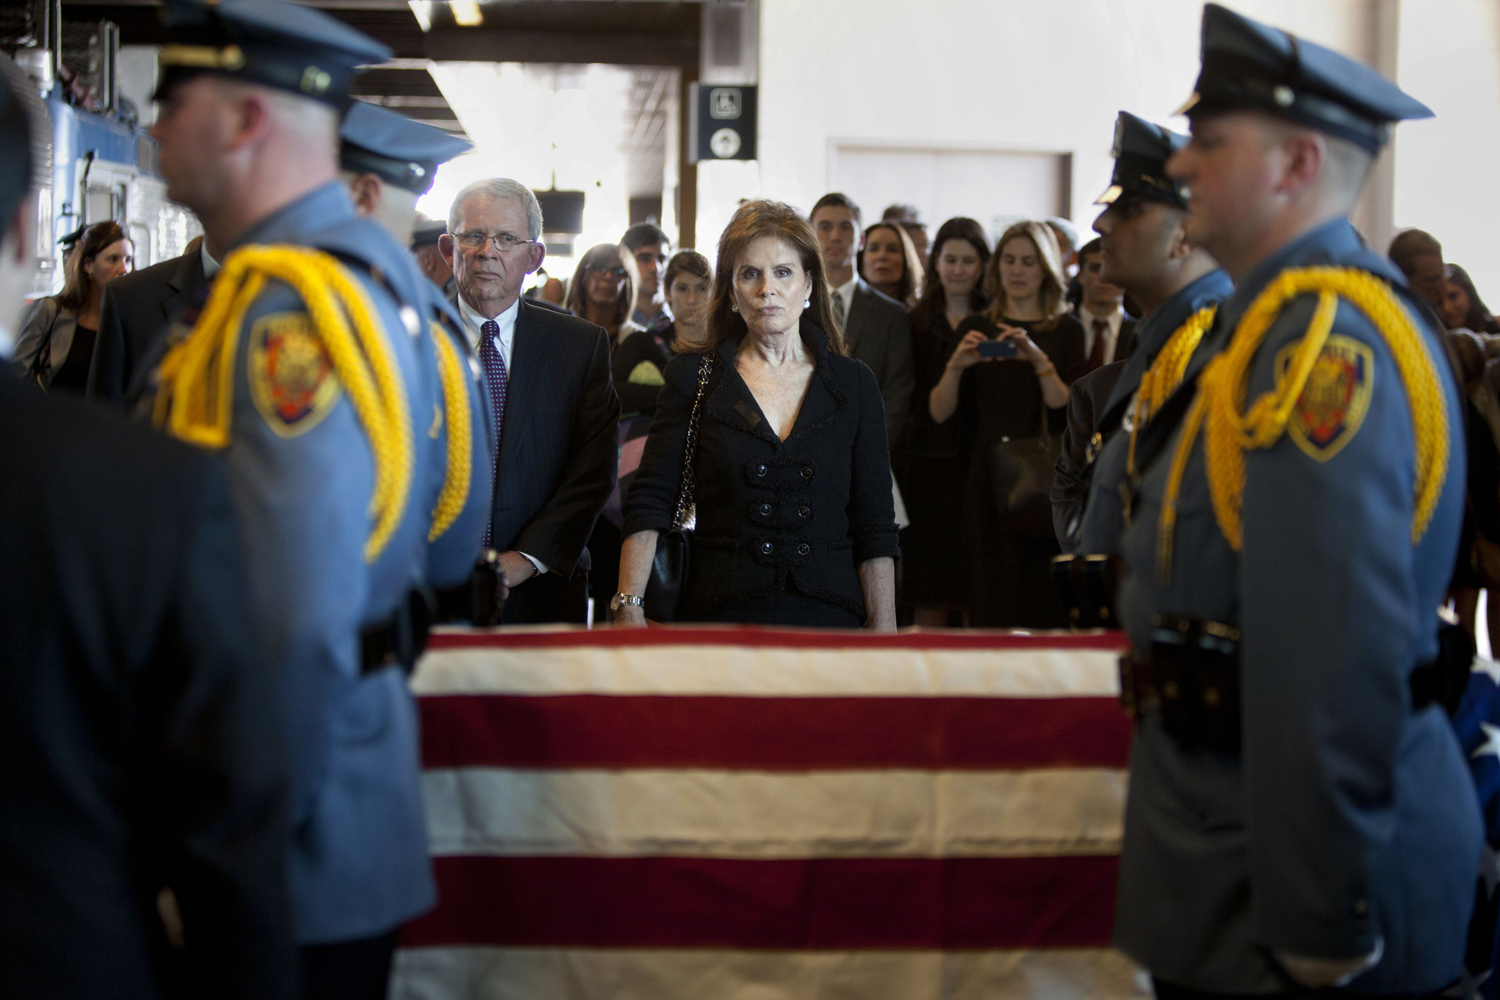 June 5, 2013. Senator Frank Lautenberg's widow Bonnie Englebardt Lautenberg (C) looks on as his casket is wheeled onto a train bound for Washington, following a color guard ceremony and final New Jersey send-off for him at the train station that bears his name, in Secaucus, New Jersey.